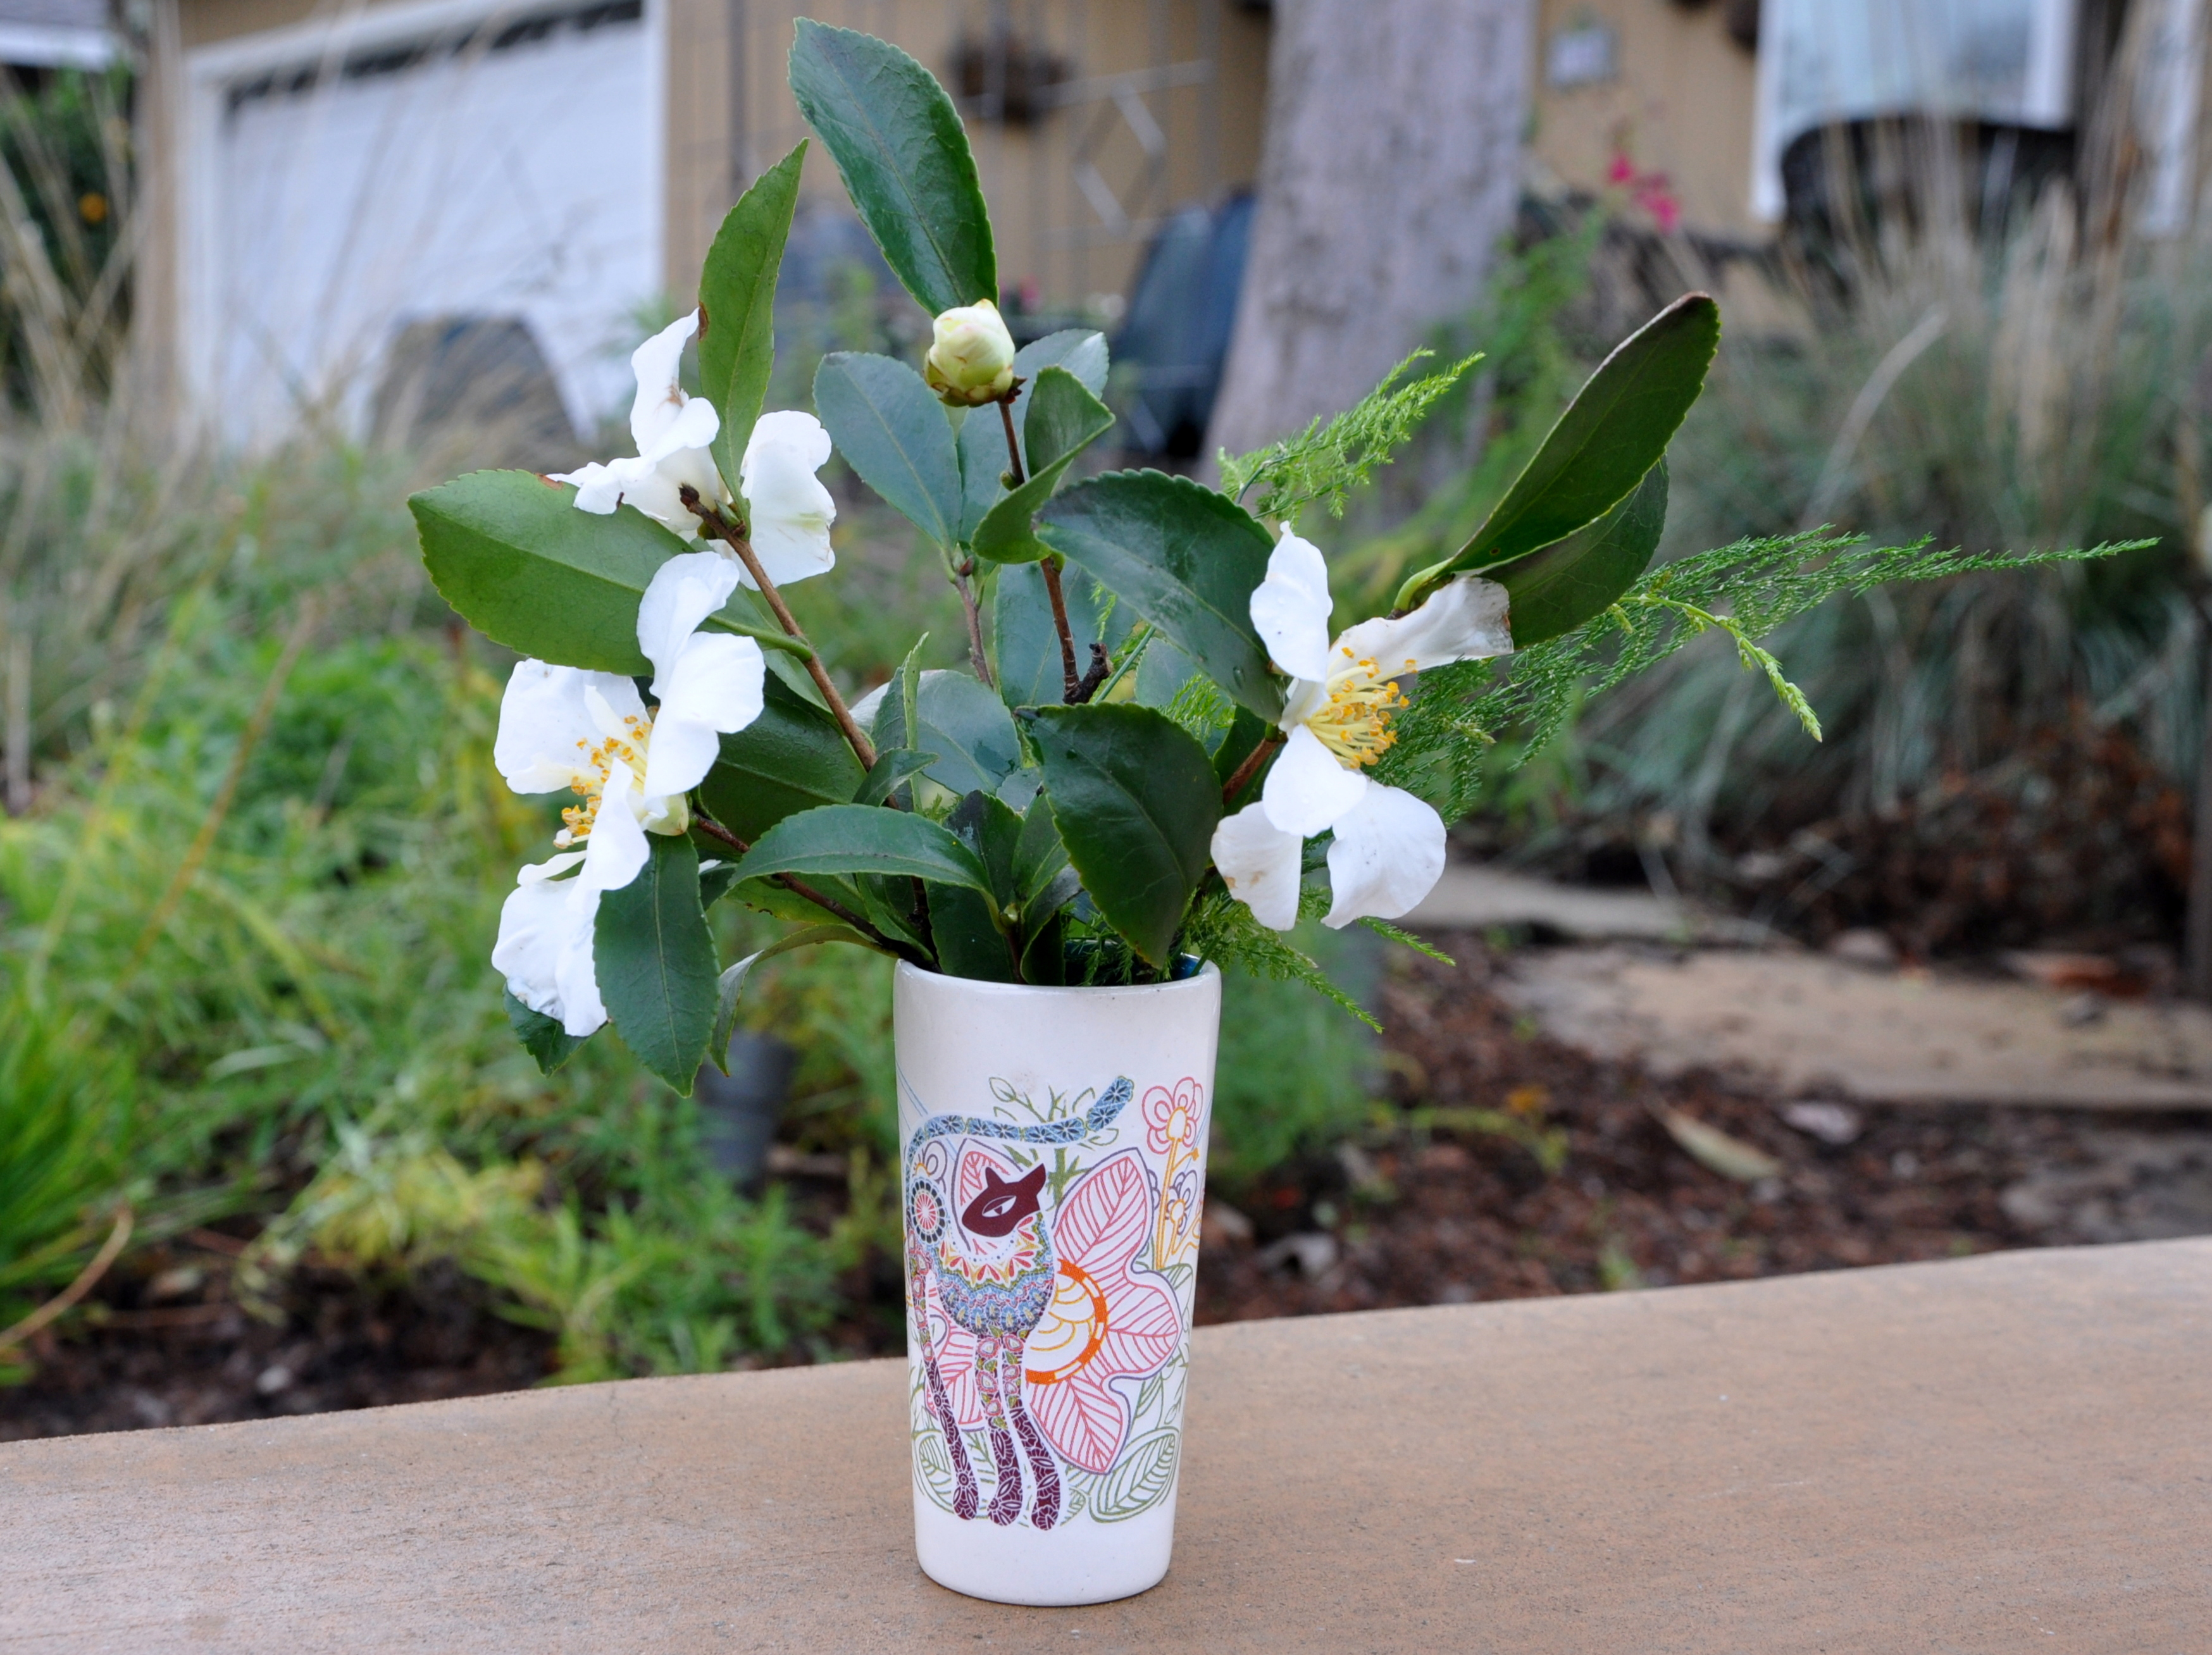 In a vase on monday gardening nirvana cat vase with camellia and fern reviewsmspy